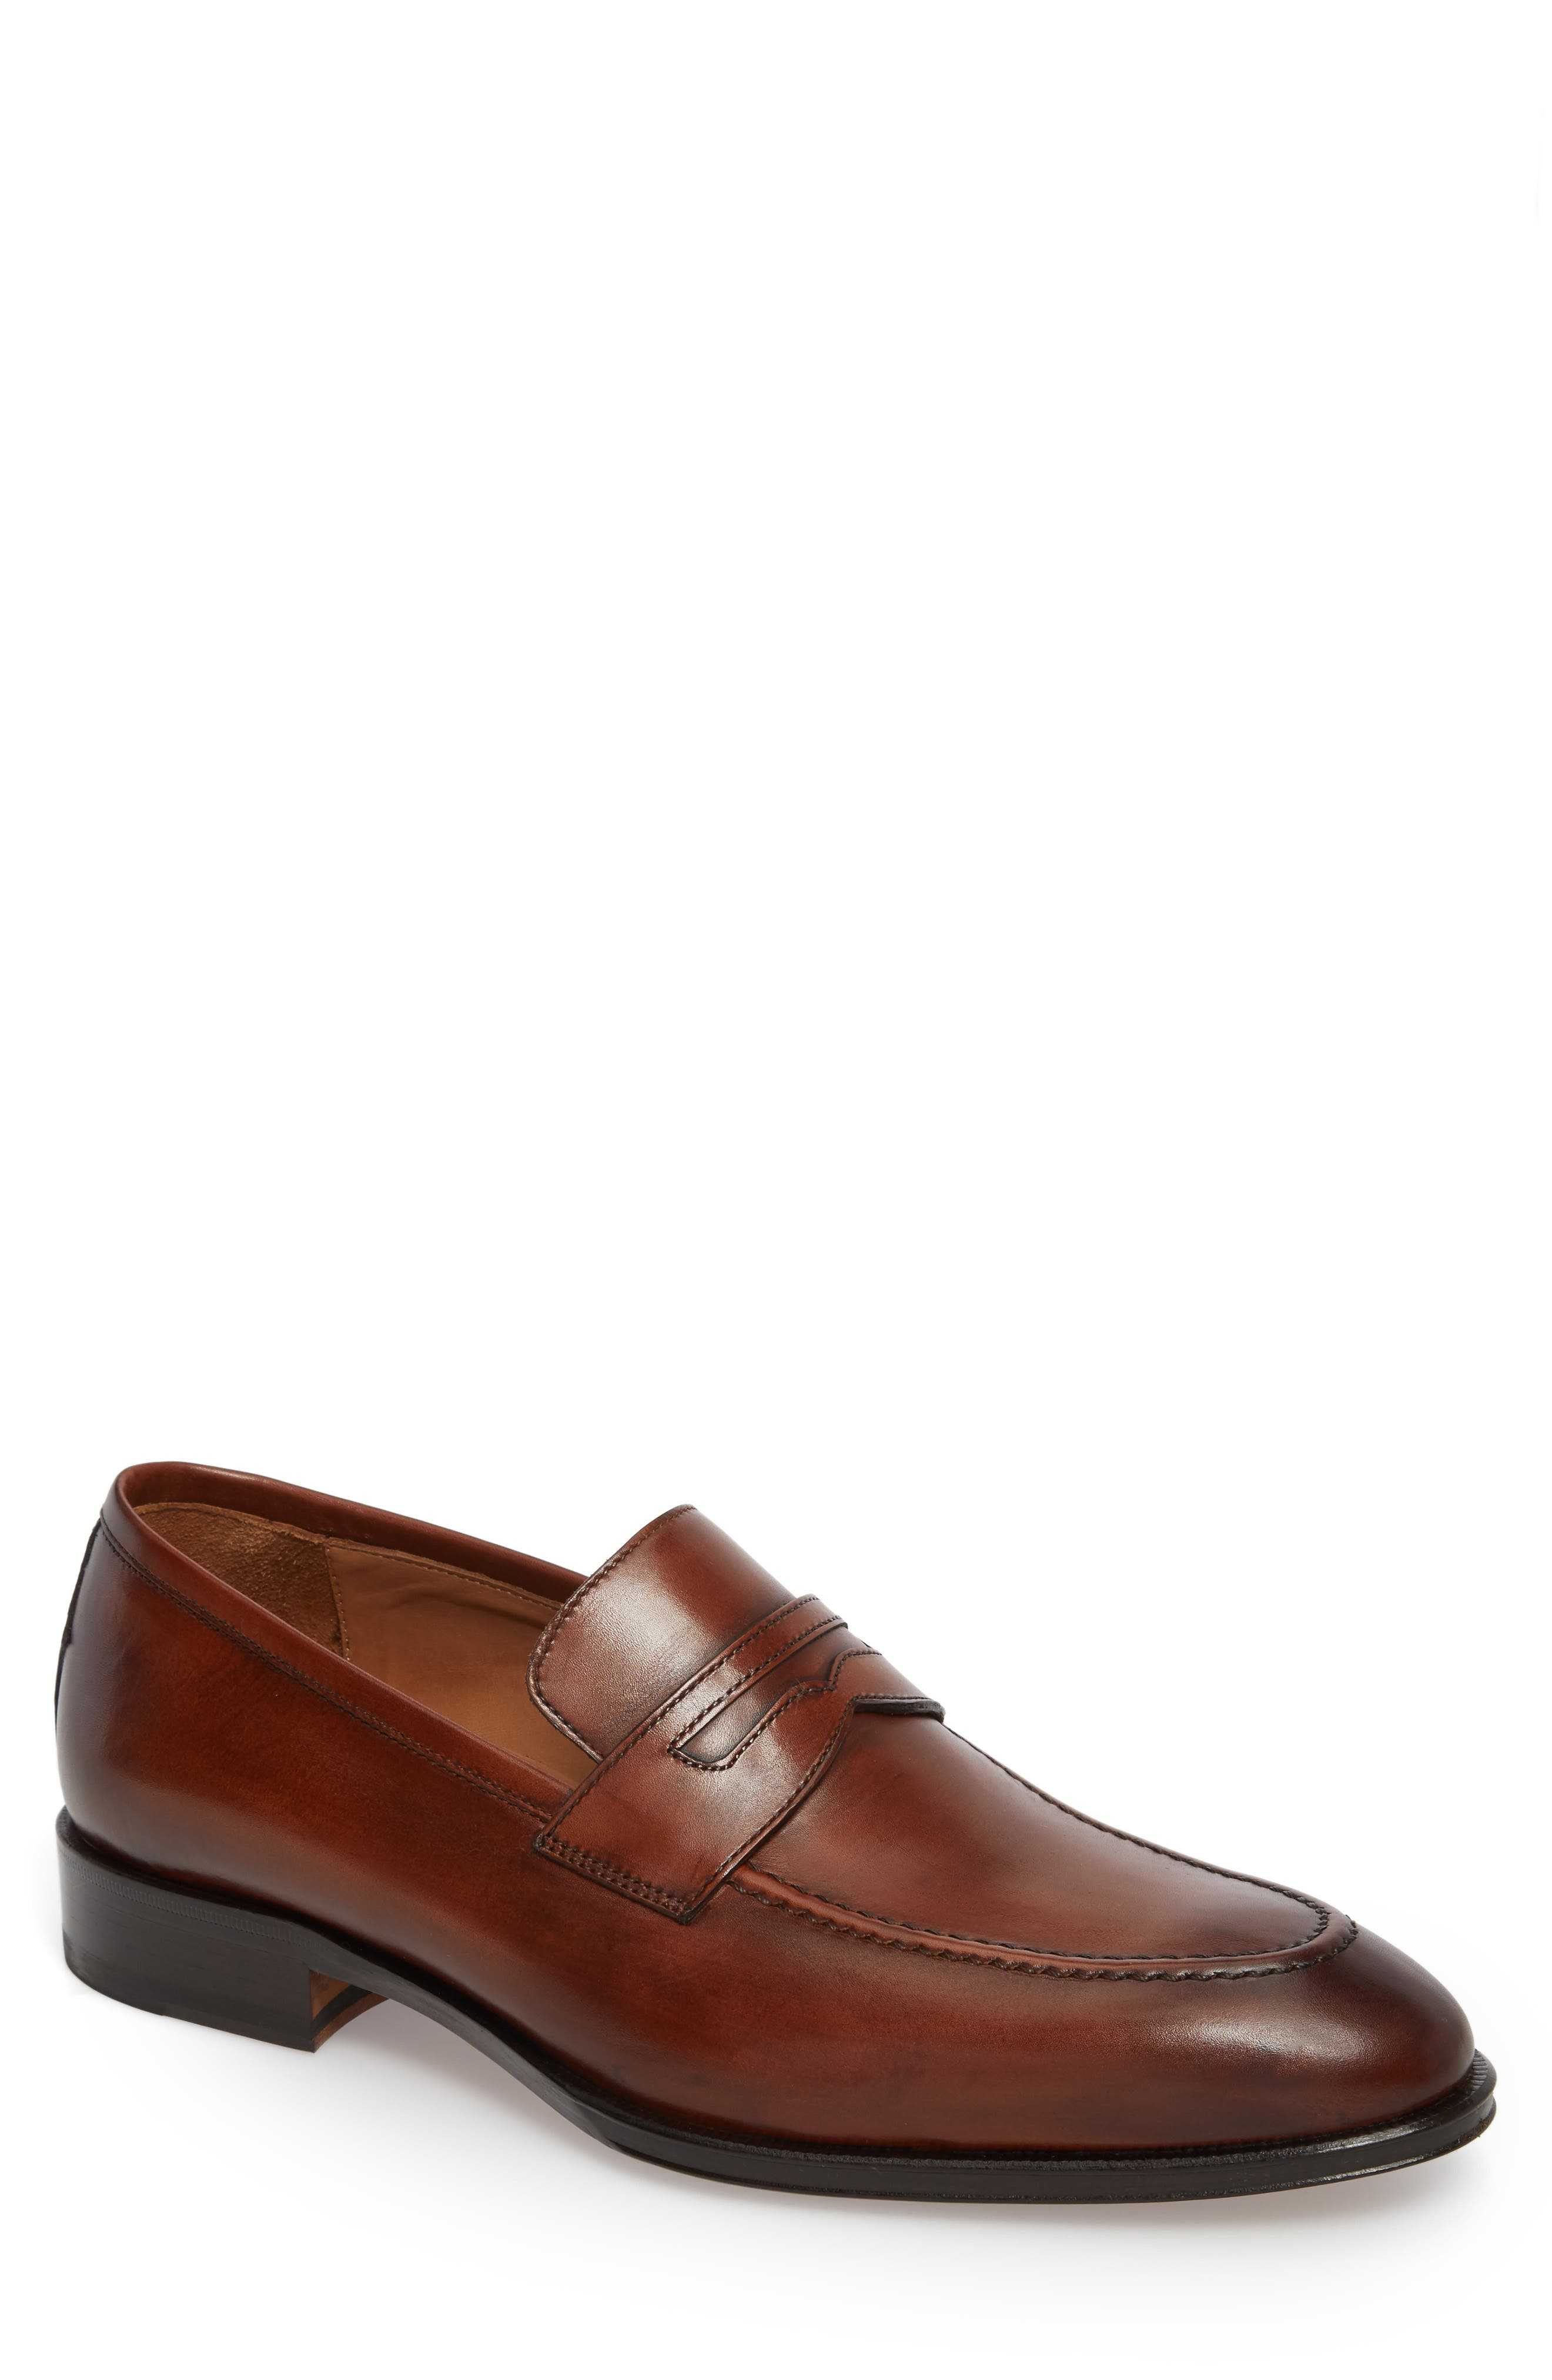 Penny Loafer,                             Main thumbnail 1, color,                             202